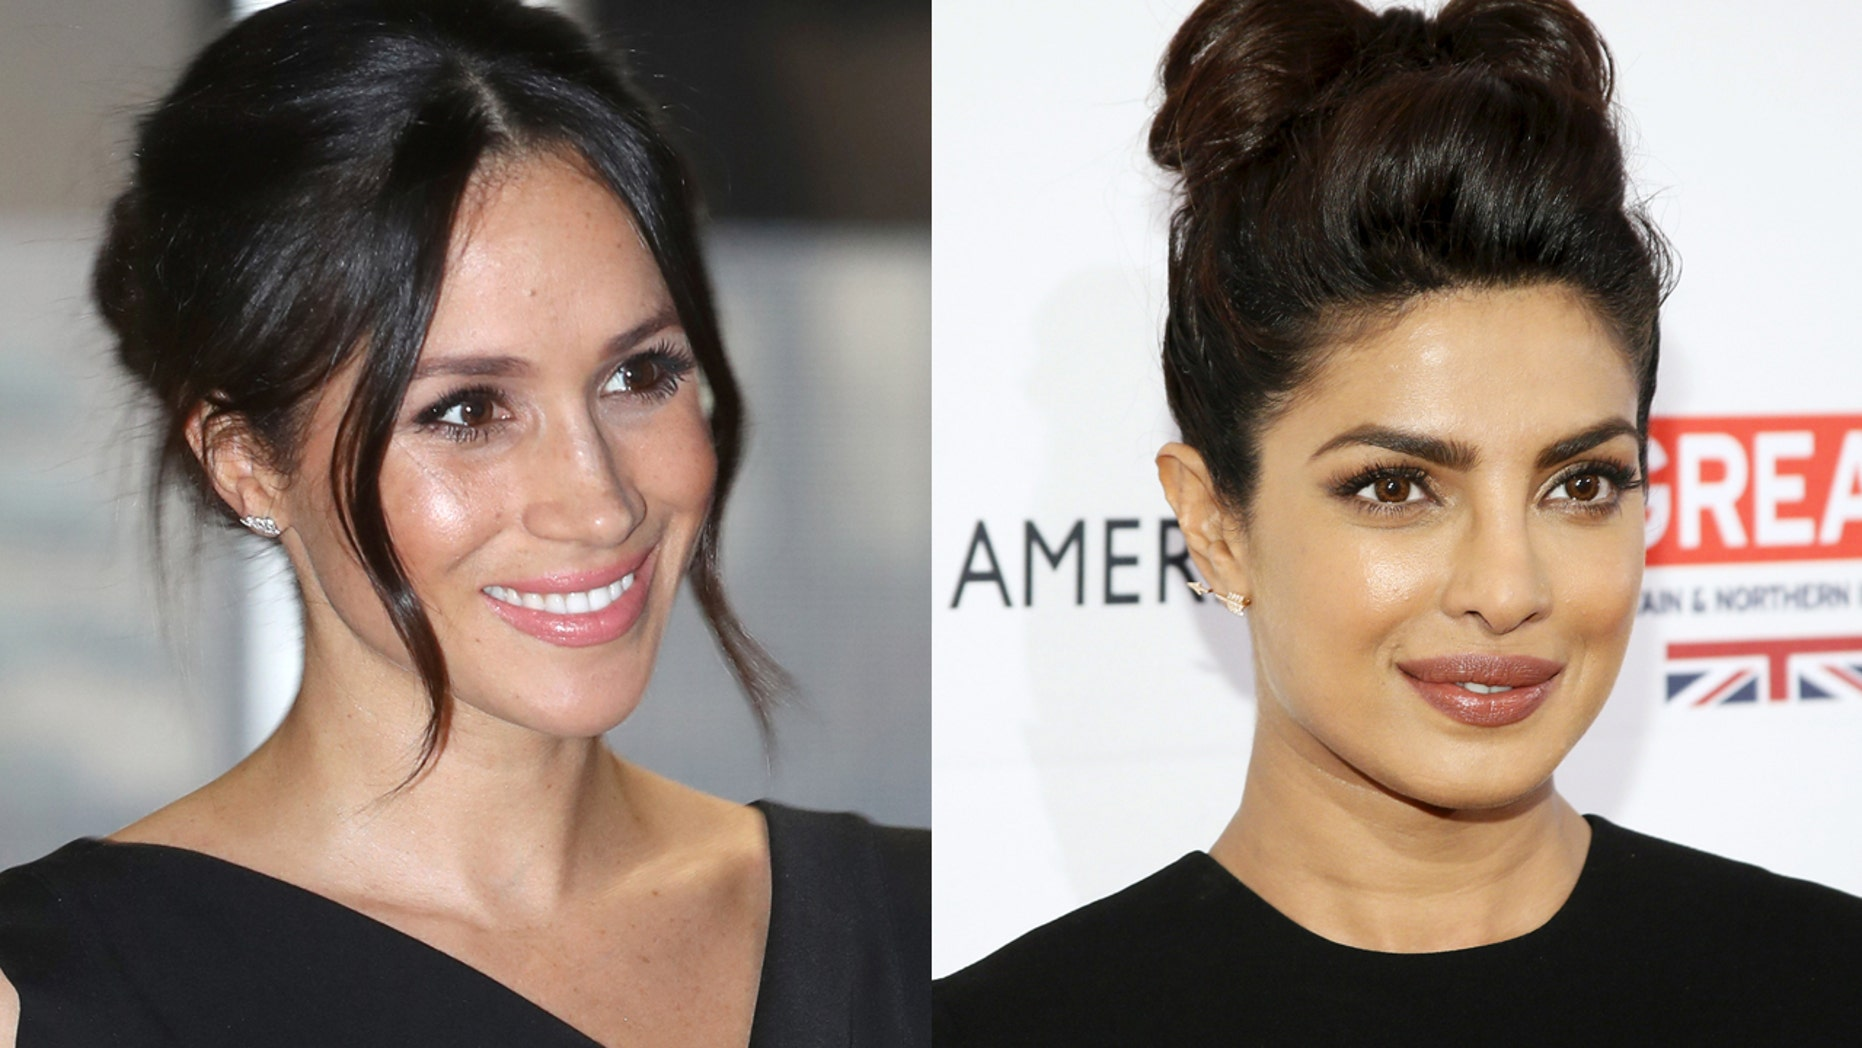 Priyanka Chopra calls Meghan Marke the new people's princess in the Time Magazine 100 Most Influential People issue.